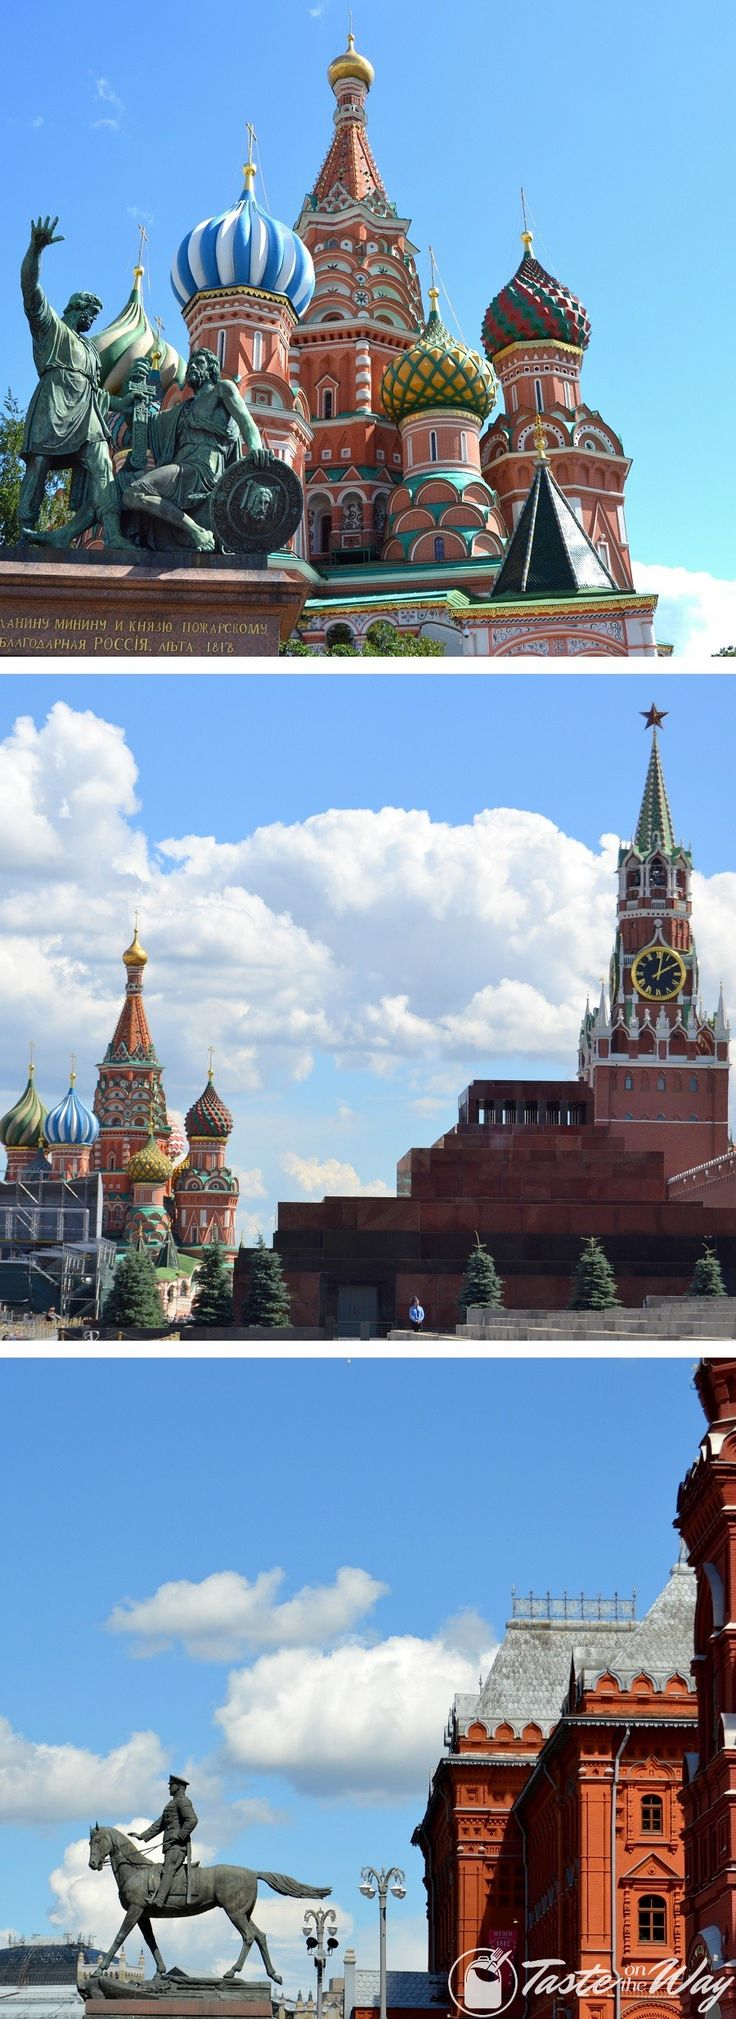 Check out our travel story about the Saint Basil's Cathedral in Moscow with pictures @tasteontheway